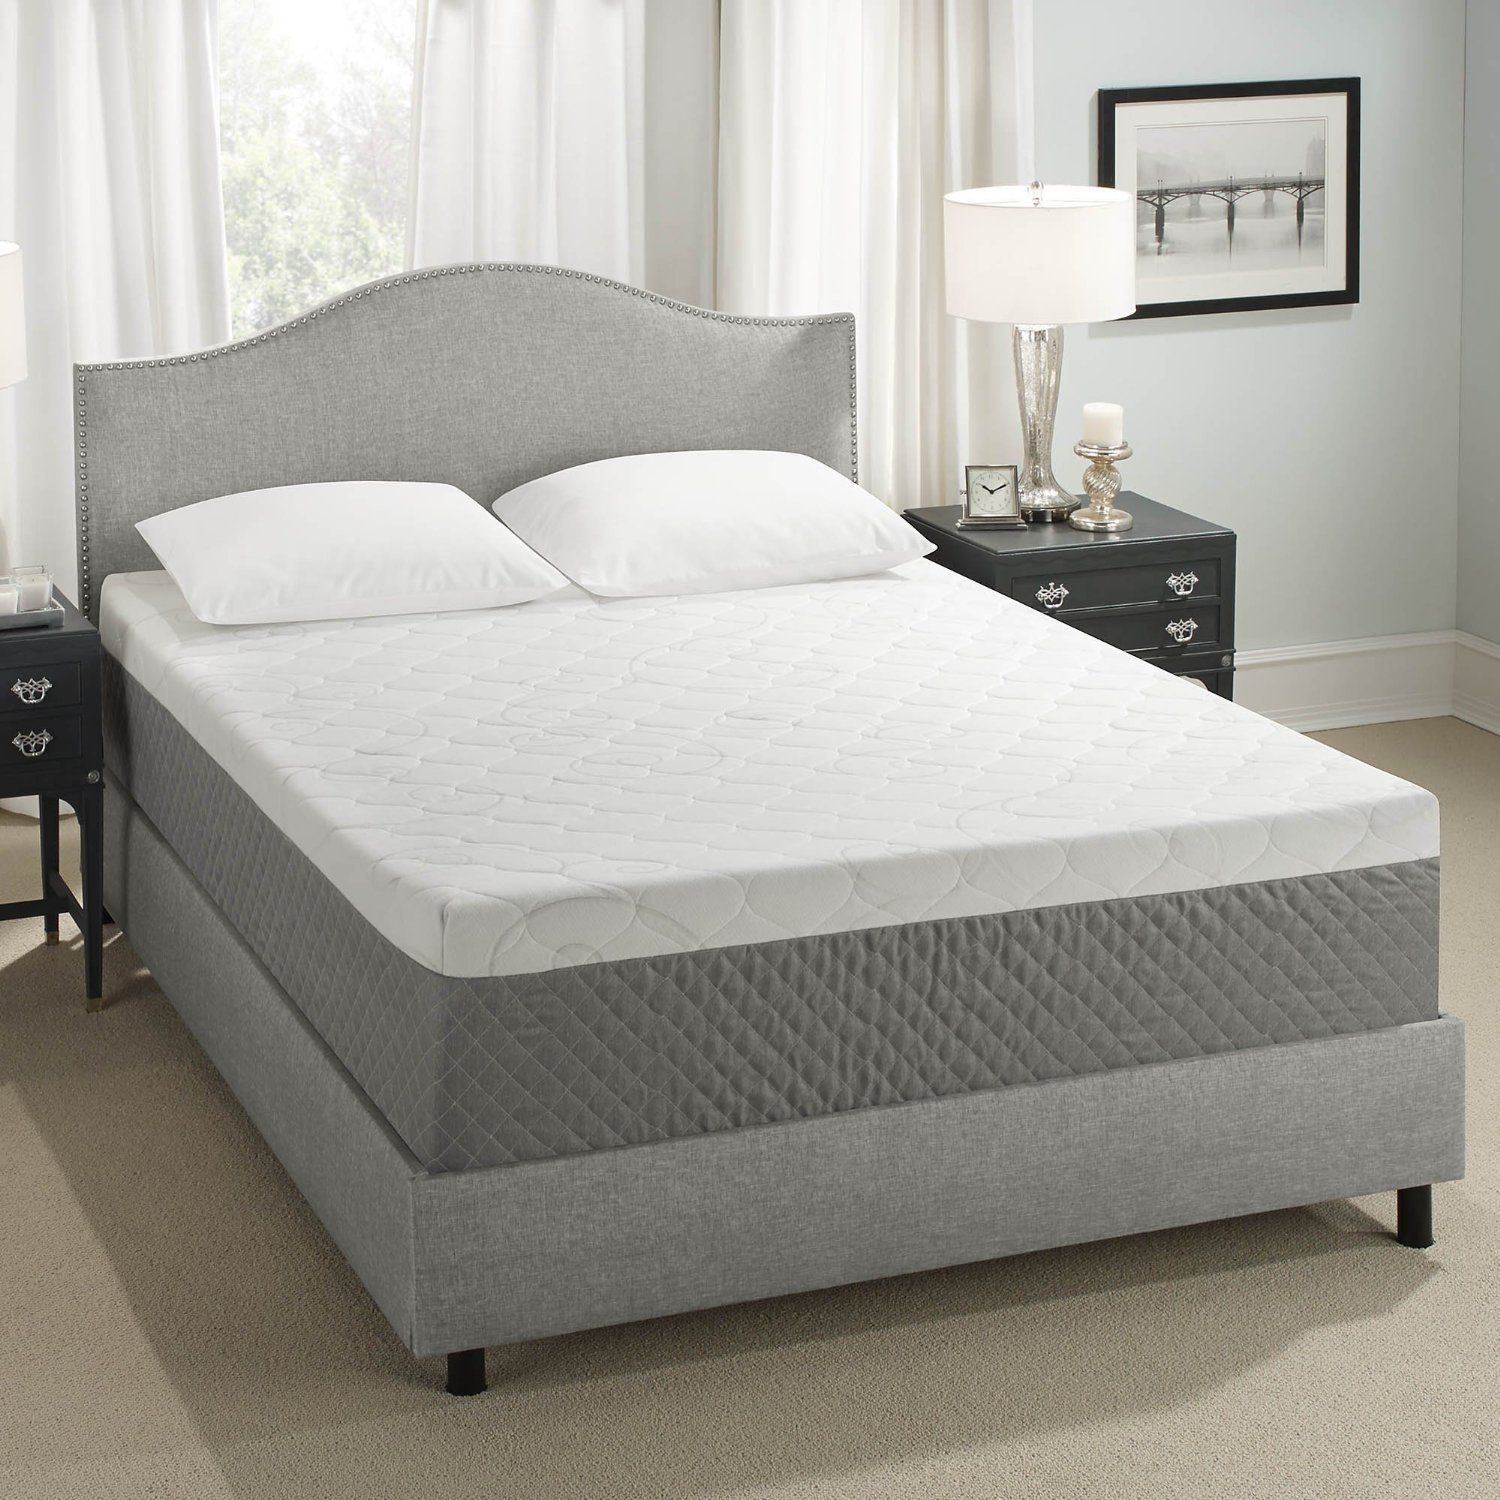 This King size 14inch Thick Memory Foam Mattress would be